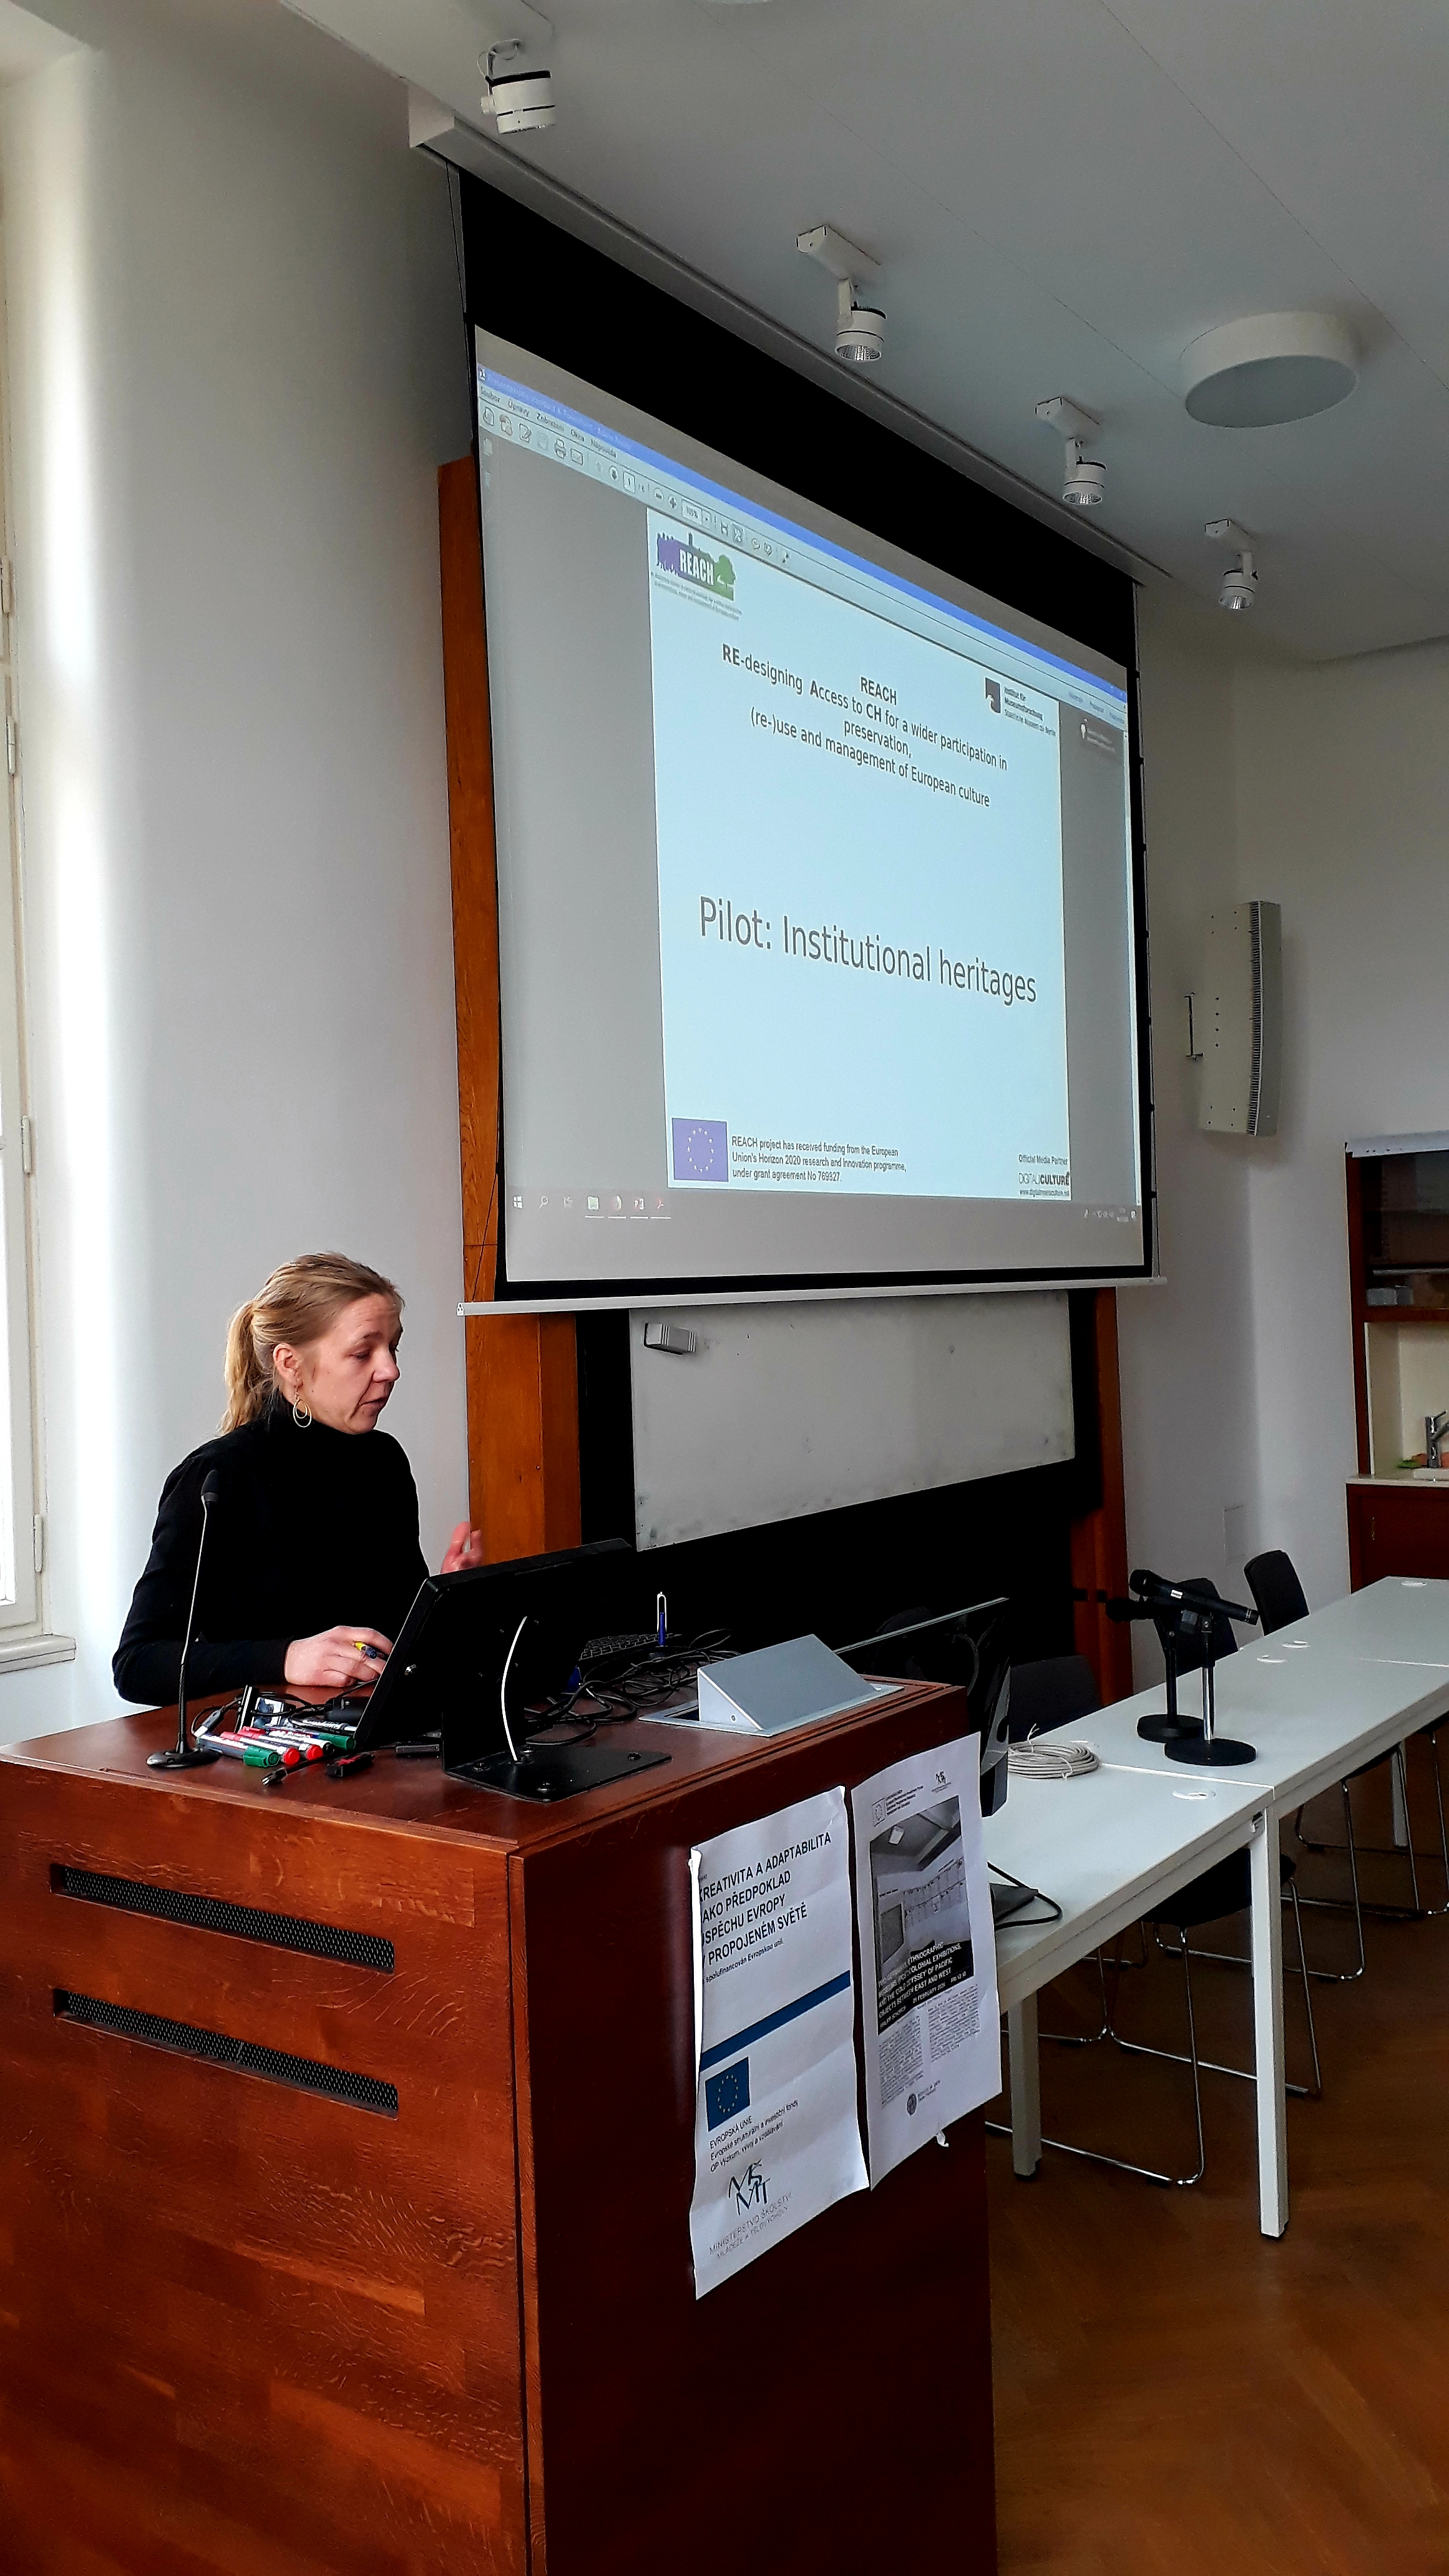 Institutions and heritage resilience – session chair Dr. Frederike Berlekamp